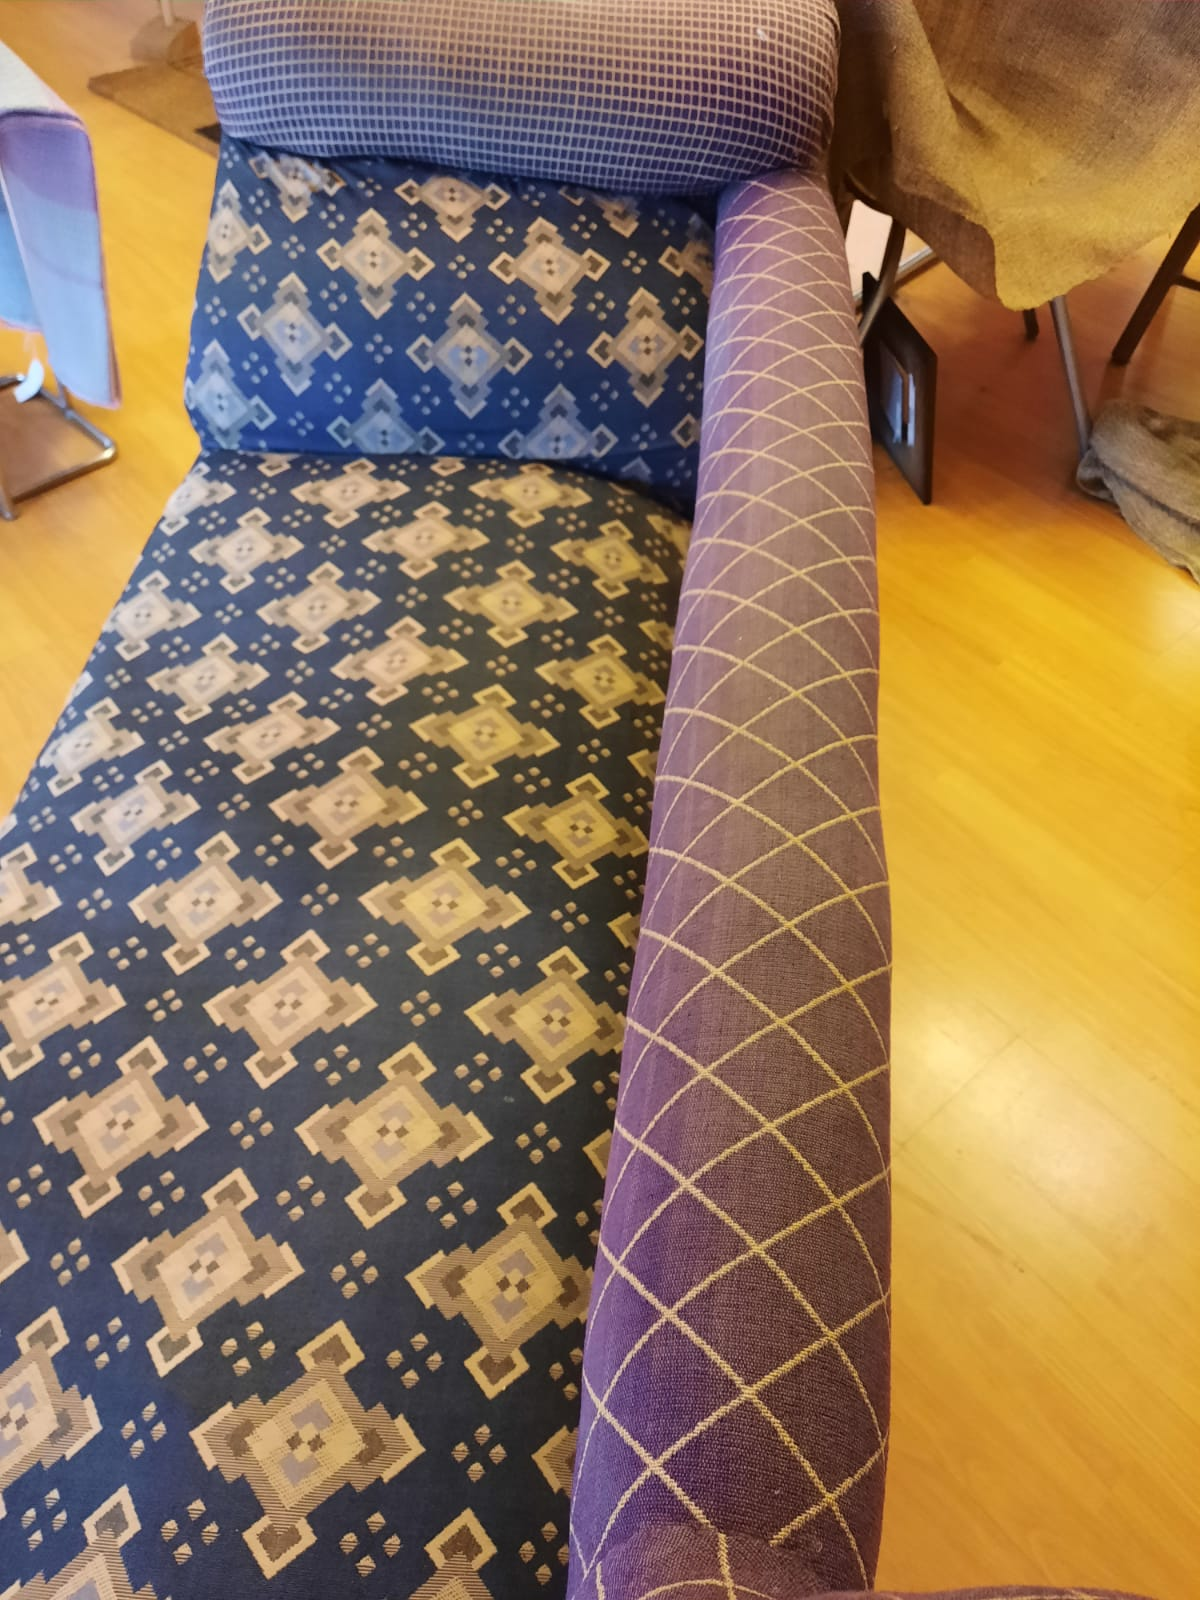 Chaise longue with old fabric before reupholstery. Long view.